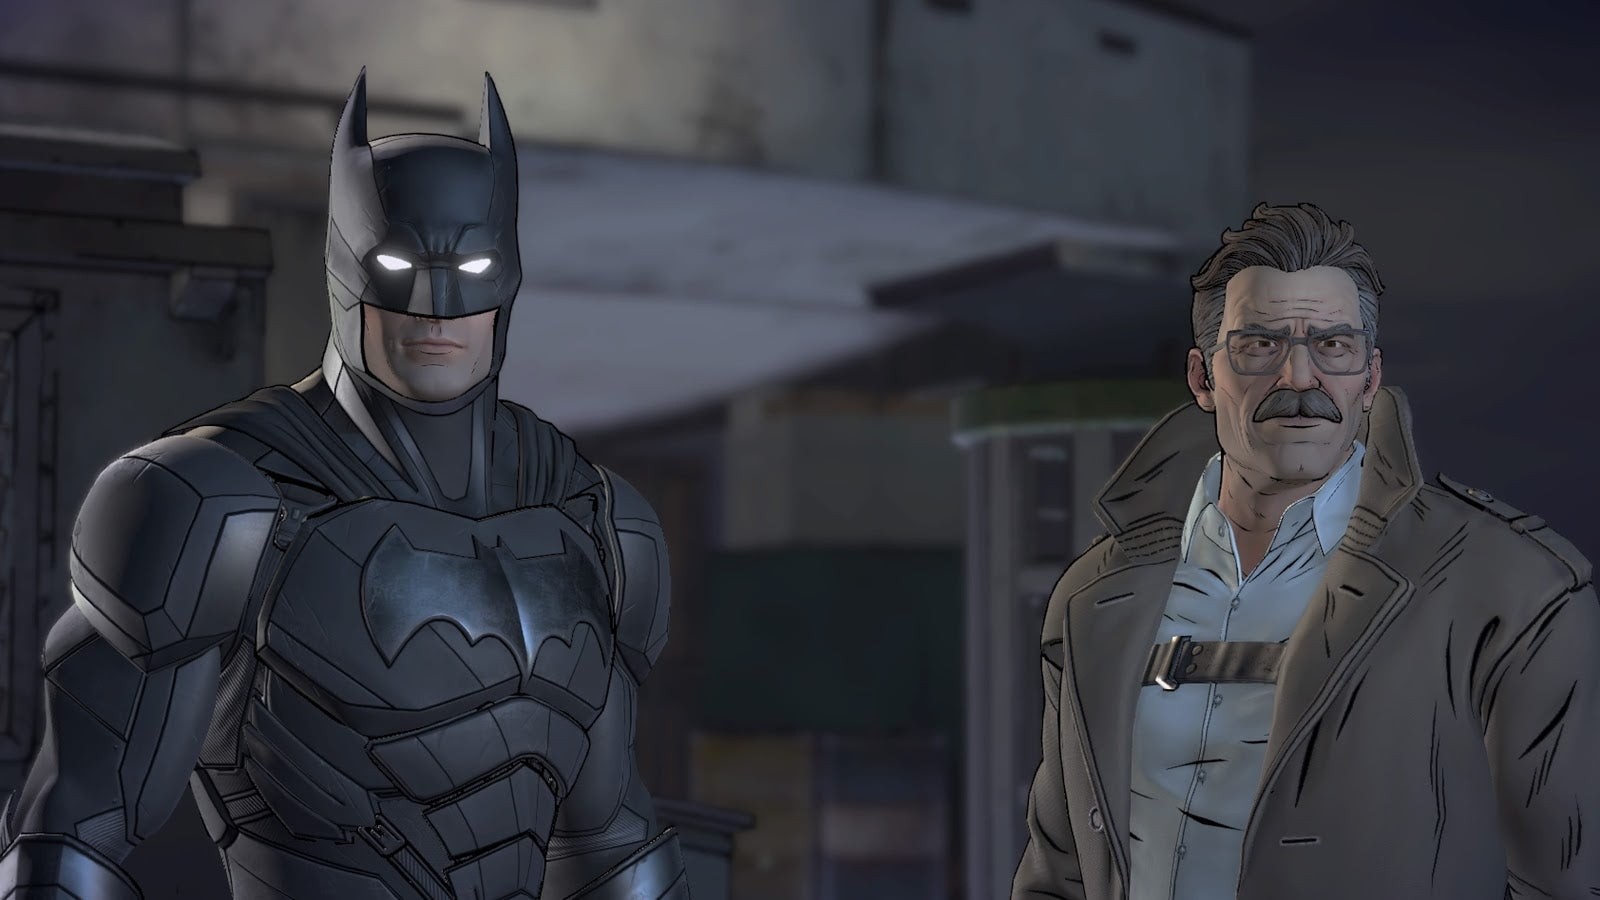 Why I'm Excited To See What The New Batman Video Game Does With One Particular Villain